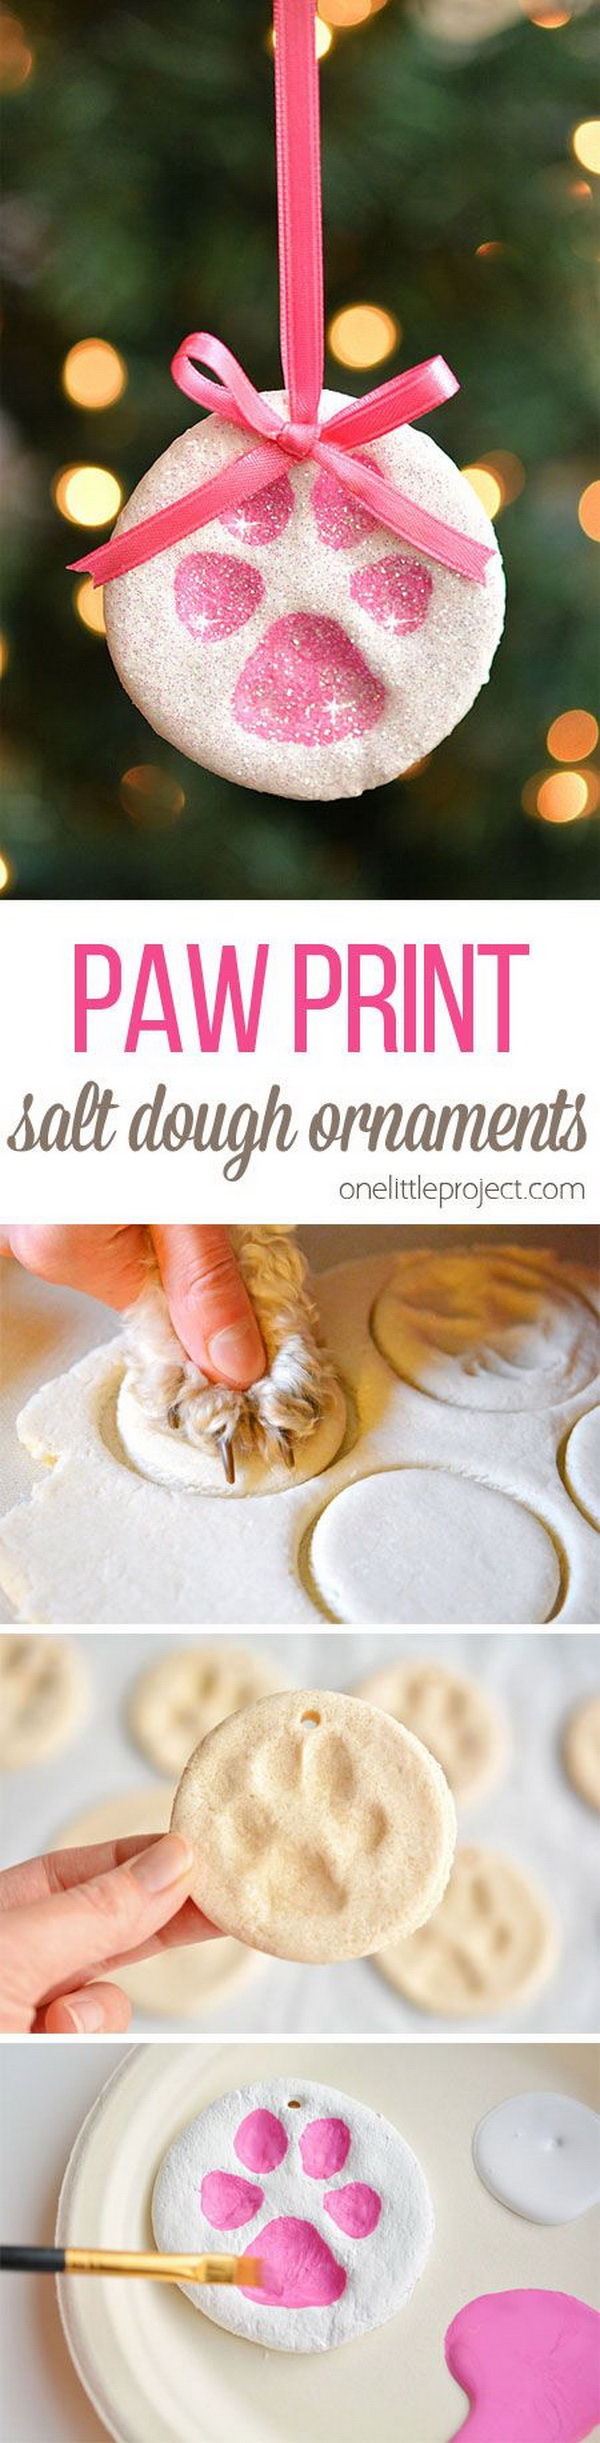 Paw Print Salt Dough Ornaments. It is so easy and fun to make a puppy paw print christmas ornament out of salt dough. Easy and Fun DIY Christmas crafts for You and Your Kids to Have Fun.